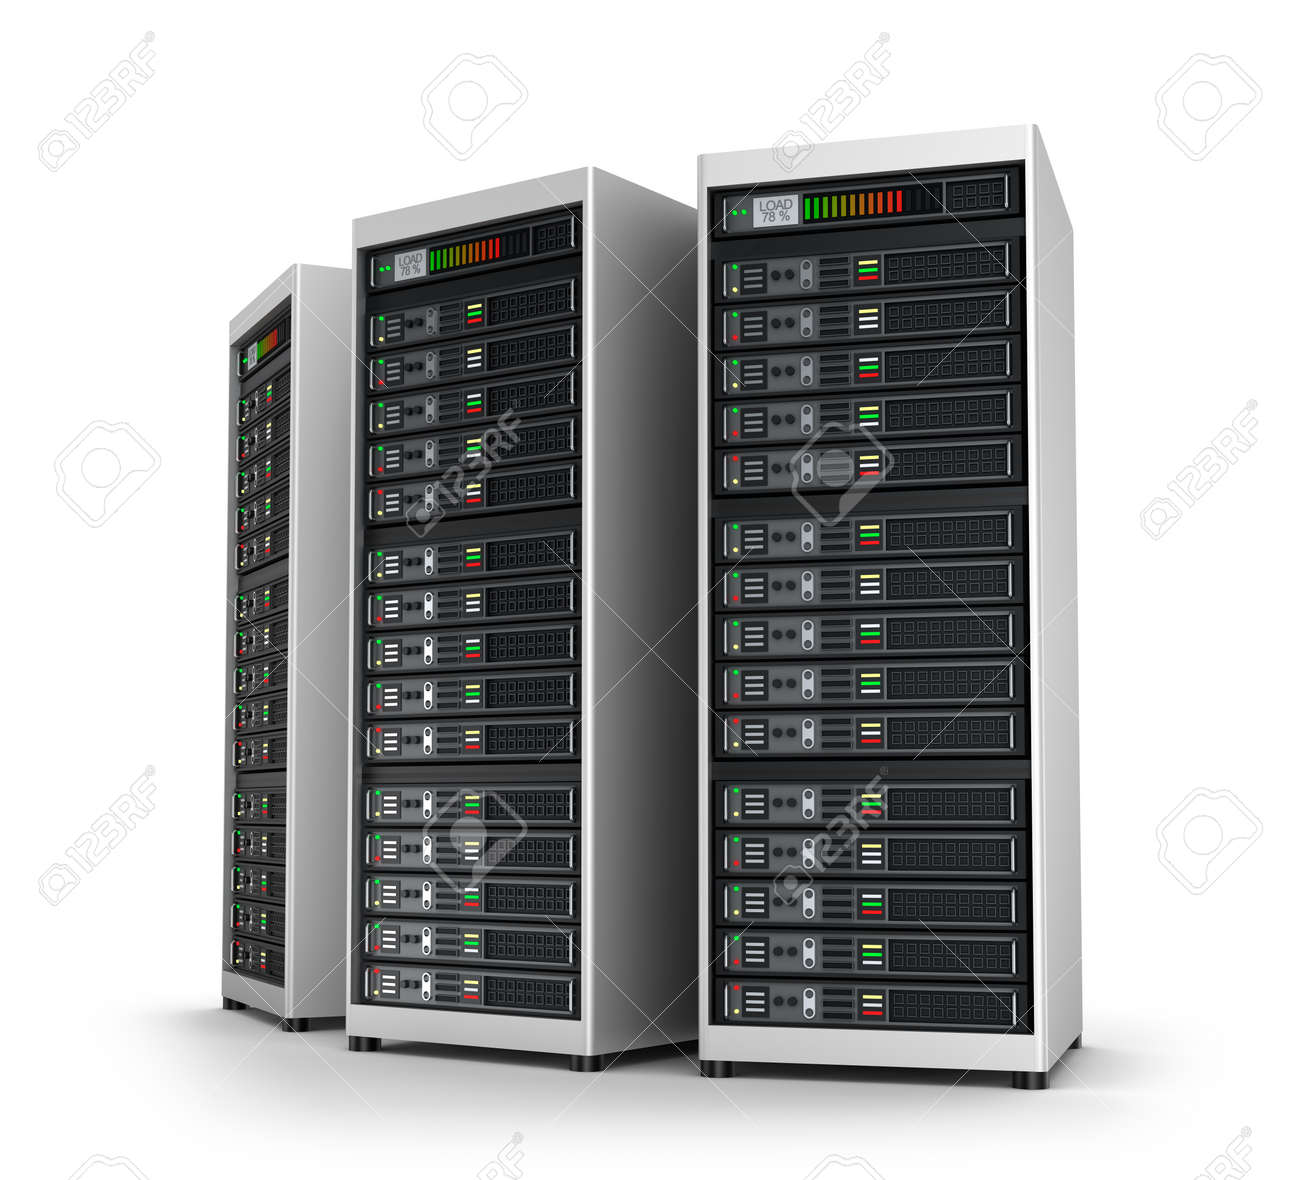 Row of network servers in data center isolated on white Stock Photo - 41248384